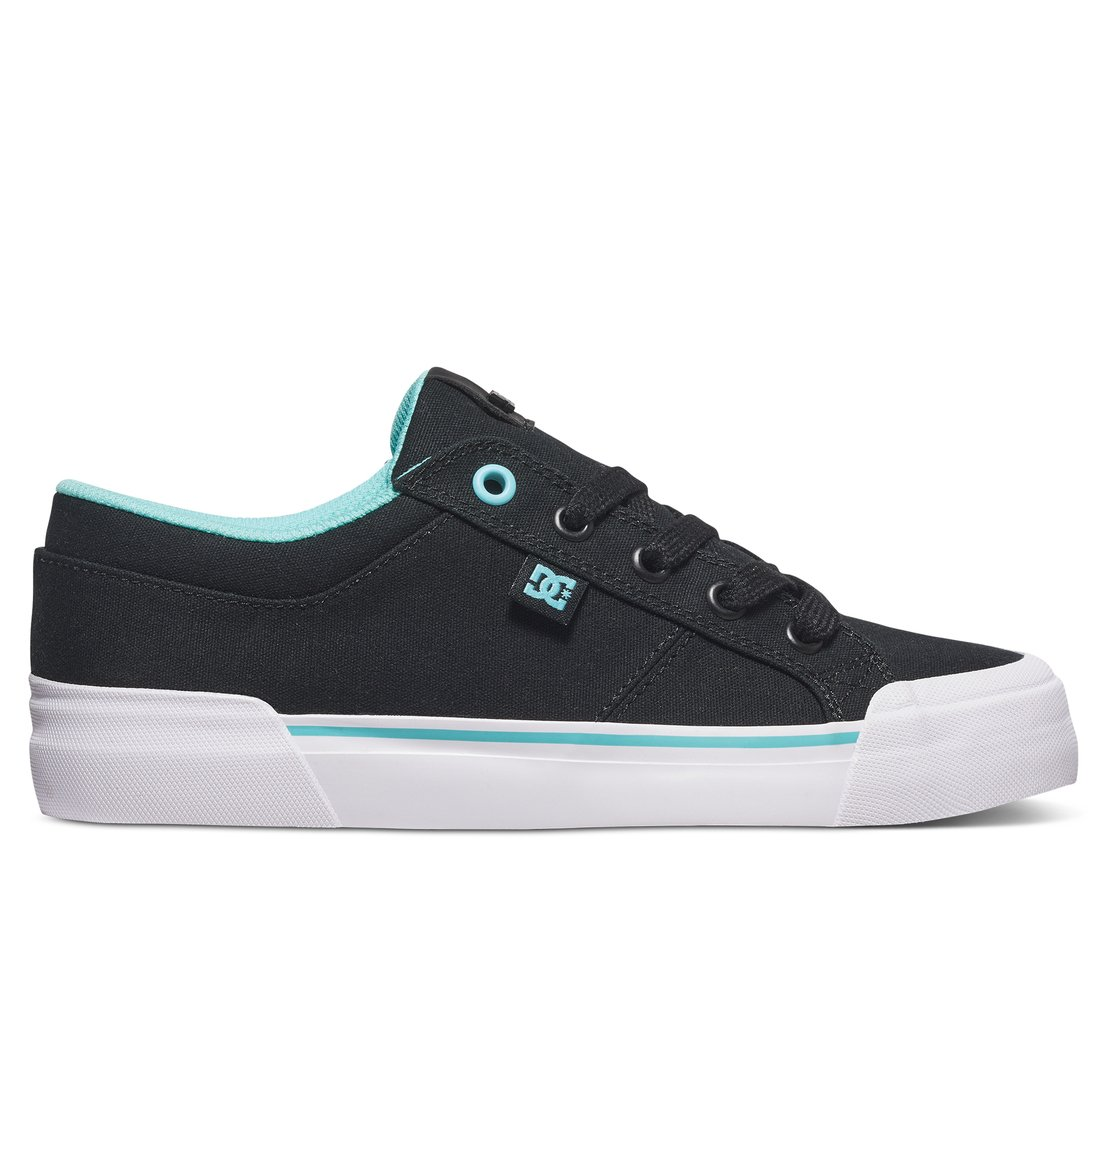 973f05a48156 0 Danni TX - Shoes for Women ADJS300186 DC Shoes